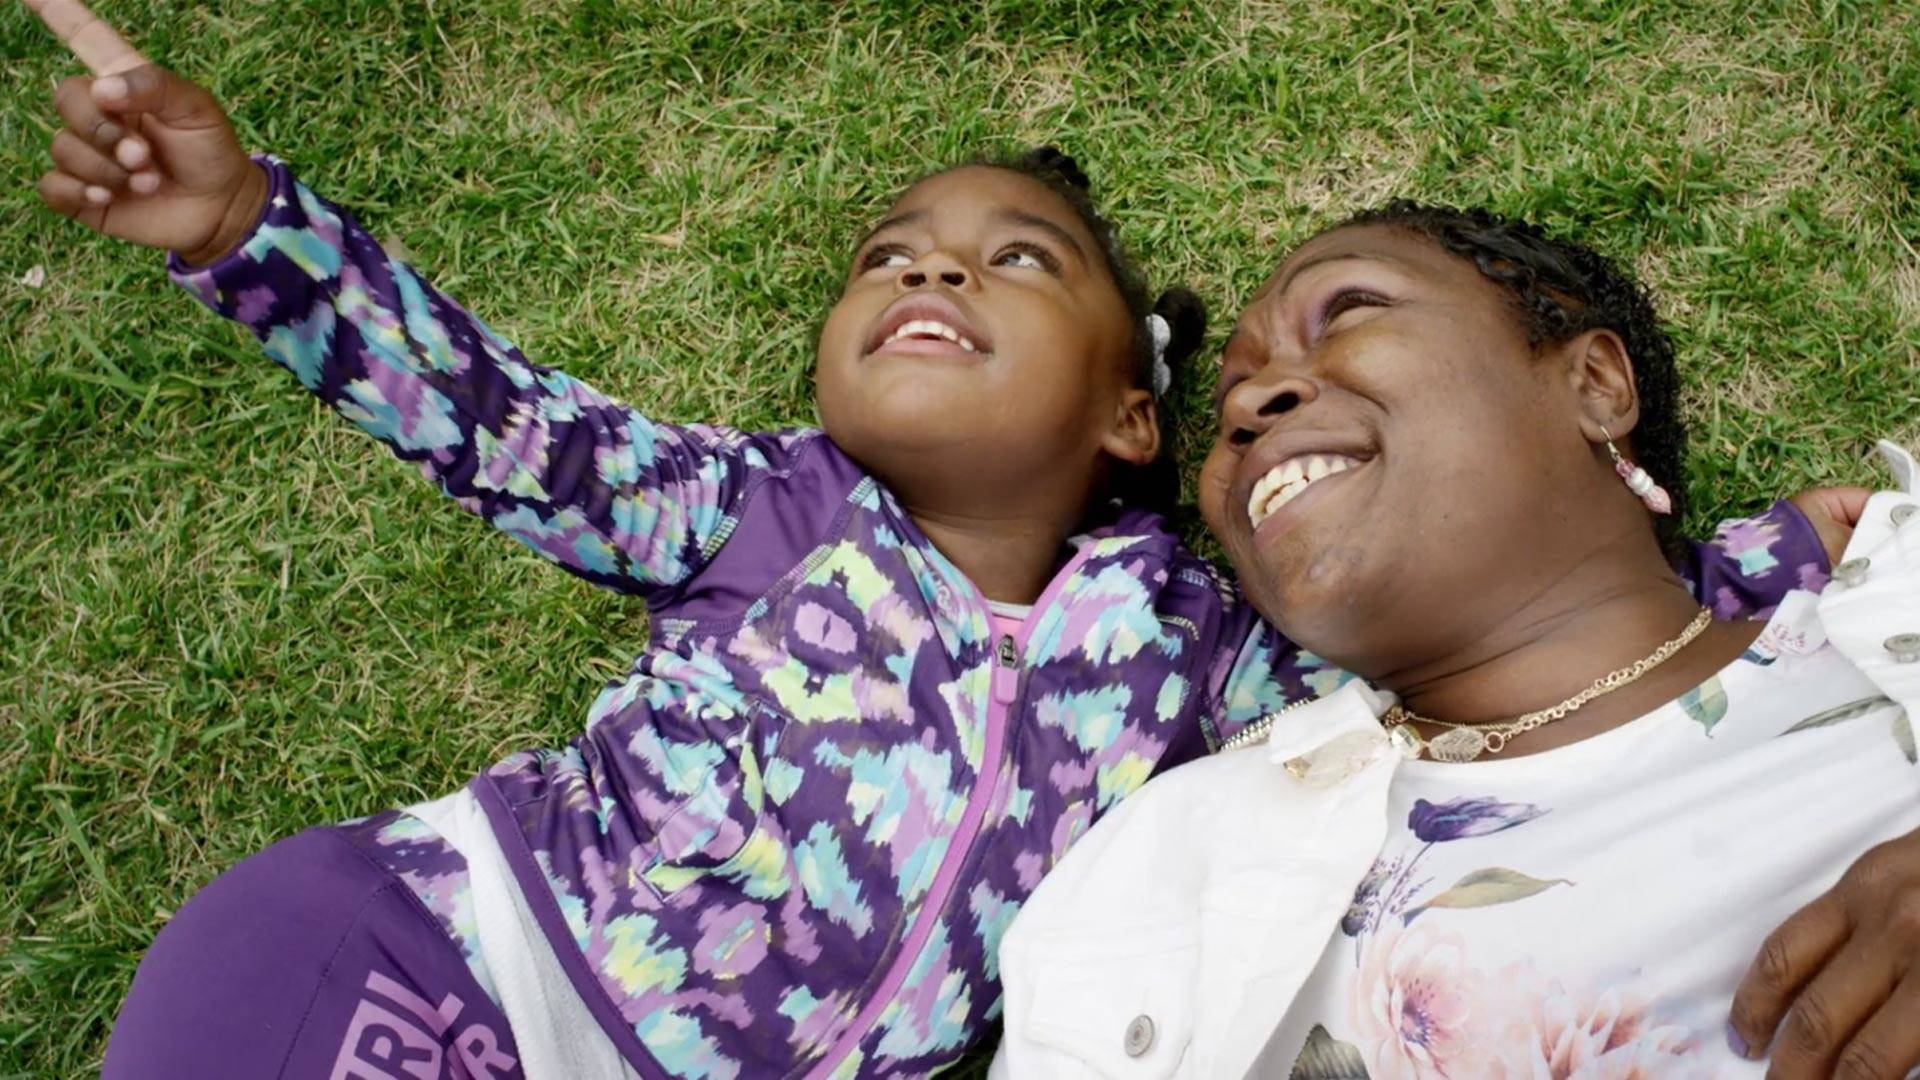 Tiffany McClendon, right, with daughter Emily in the documentary 'Tender Souls.' Brenton Gieser